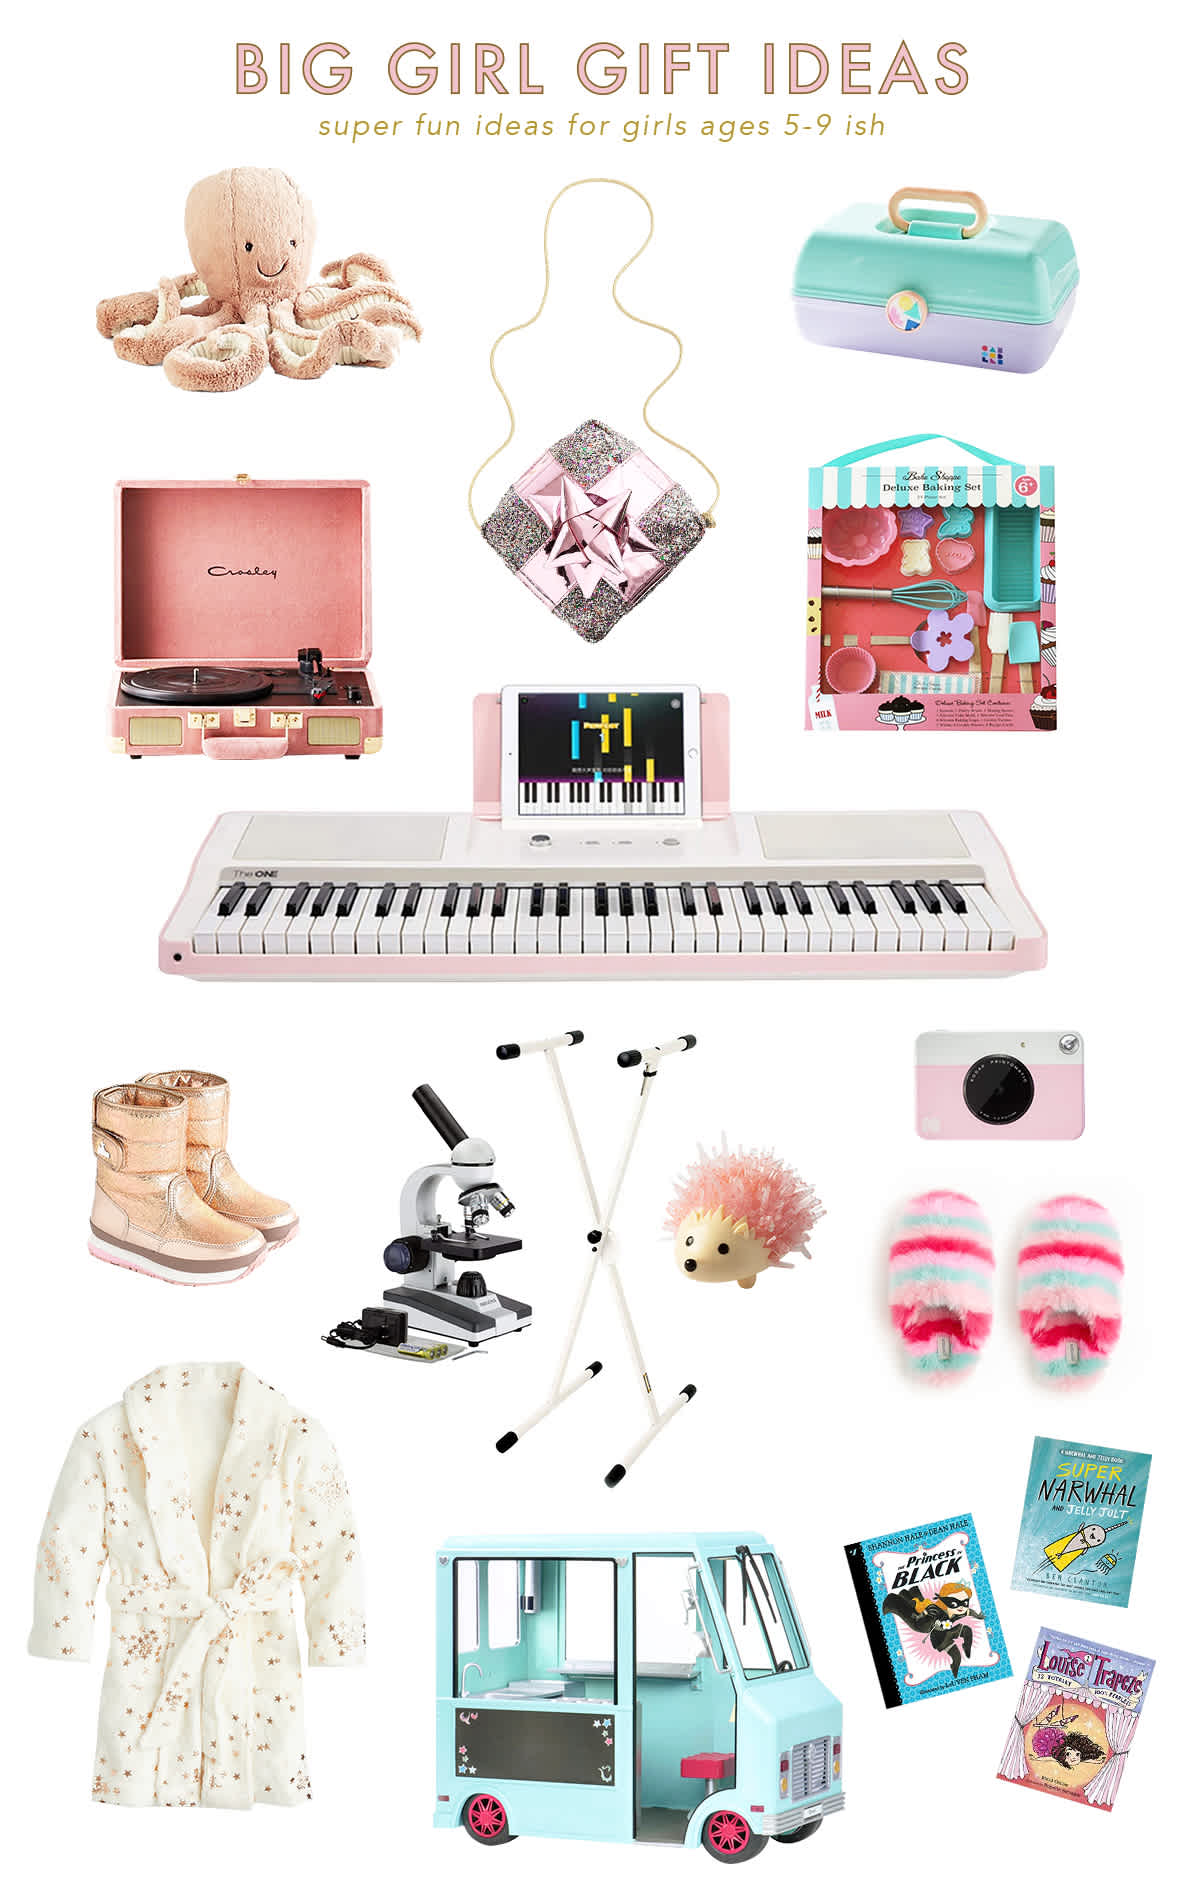 holiday gift ideas for big girls